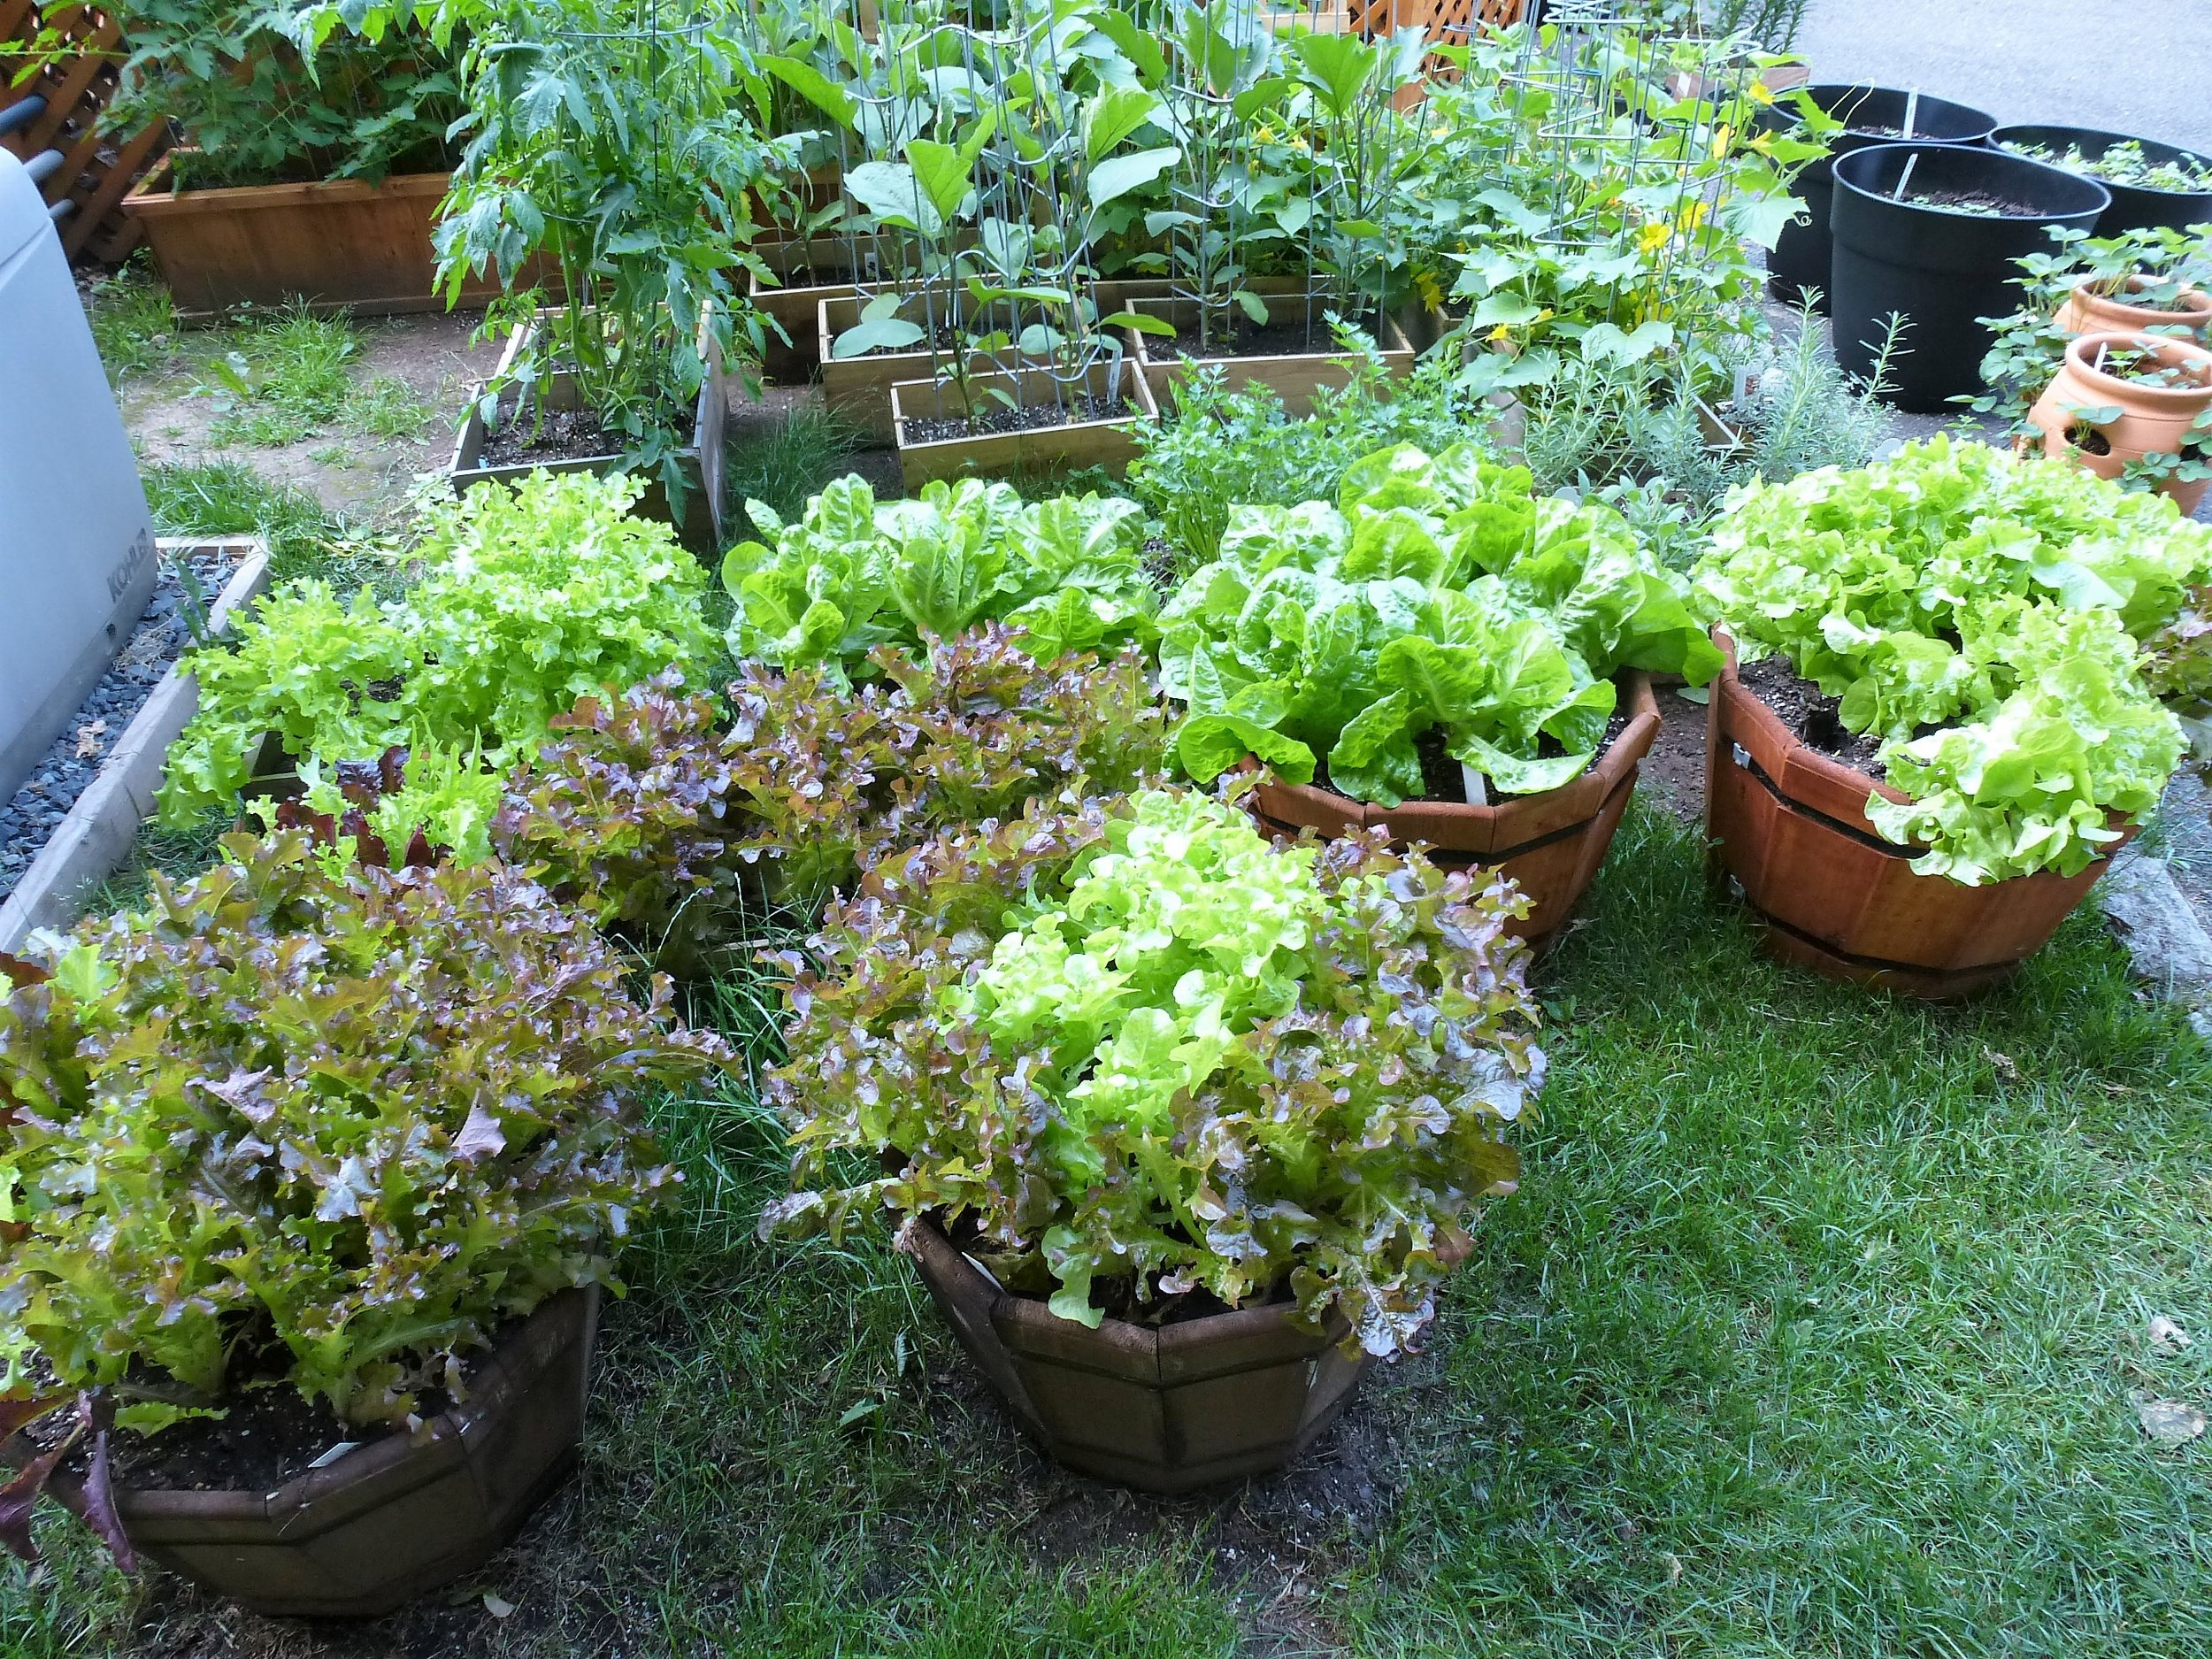 Lettuce grown in containers